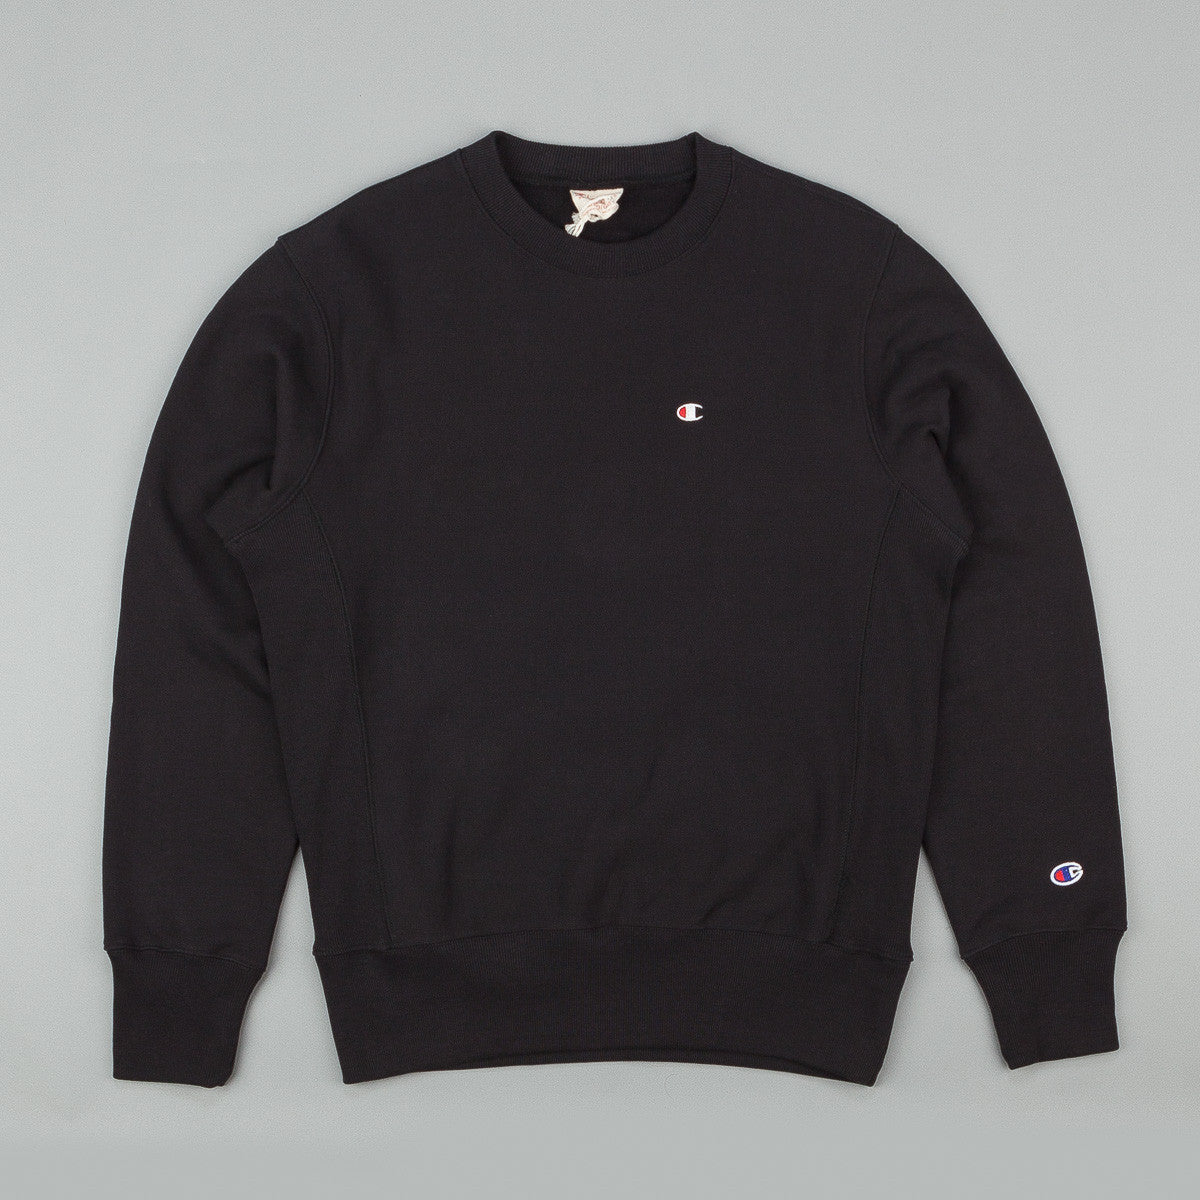 Champion Small C Reverse Weave Crew Neck Sweatshirt